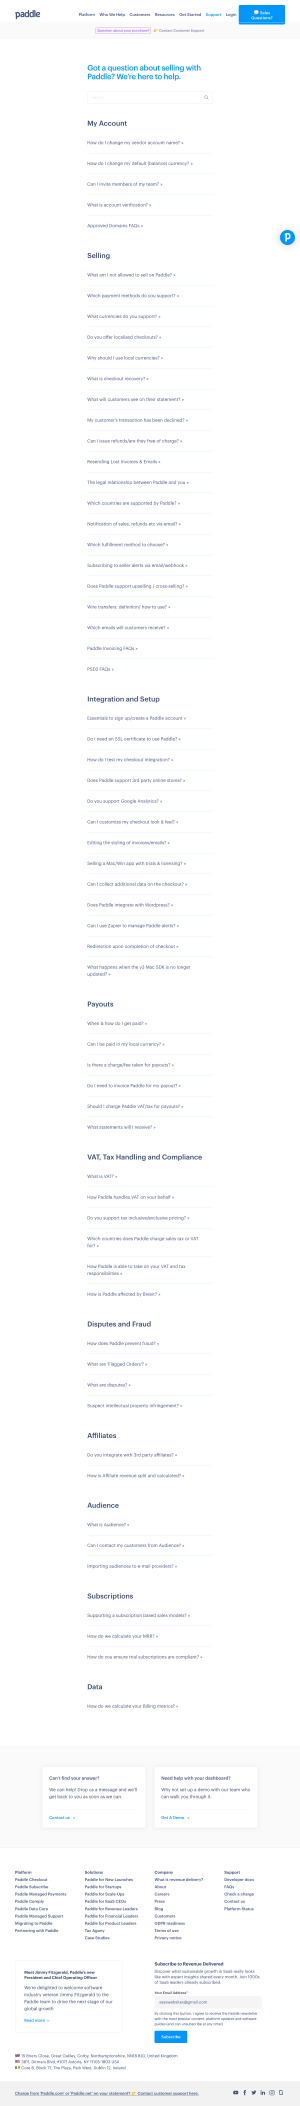 Paddle – FAQs page